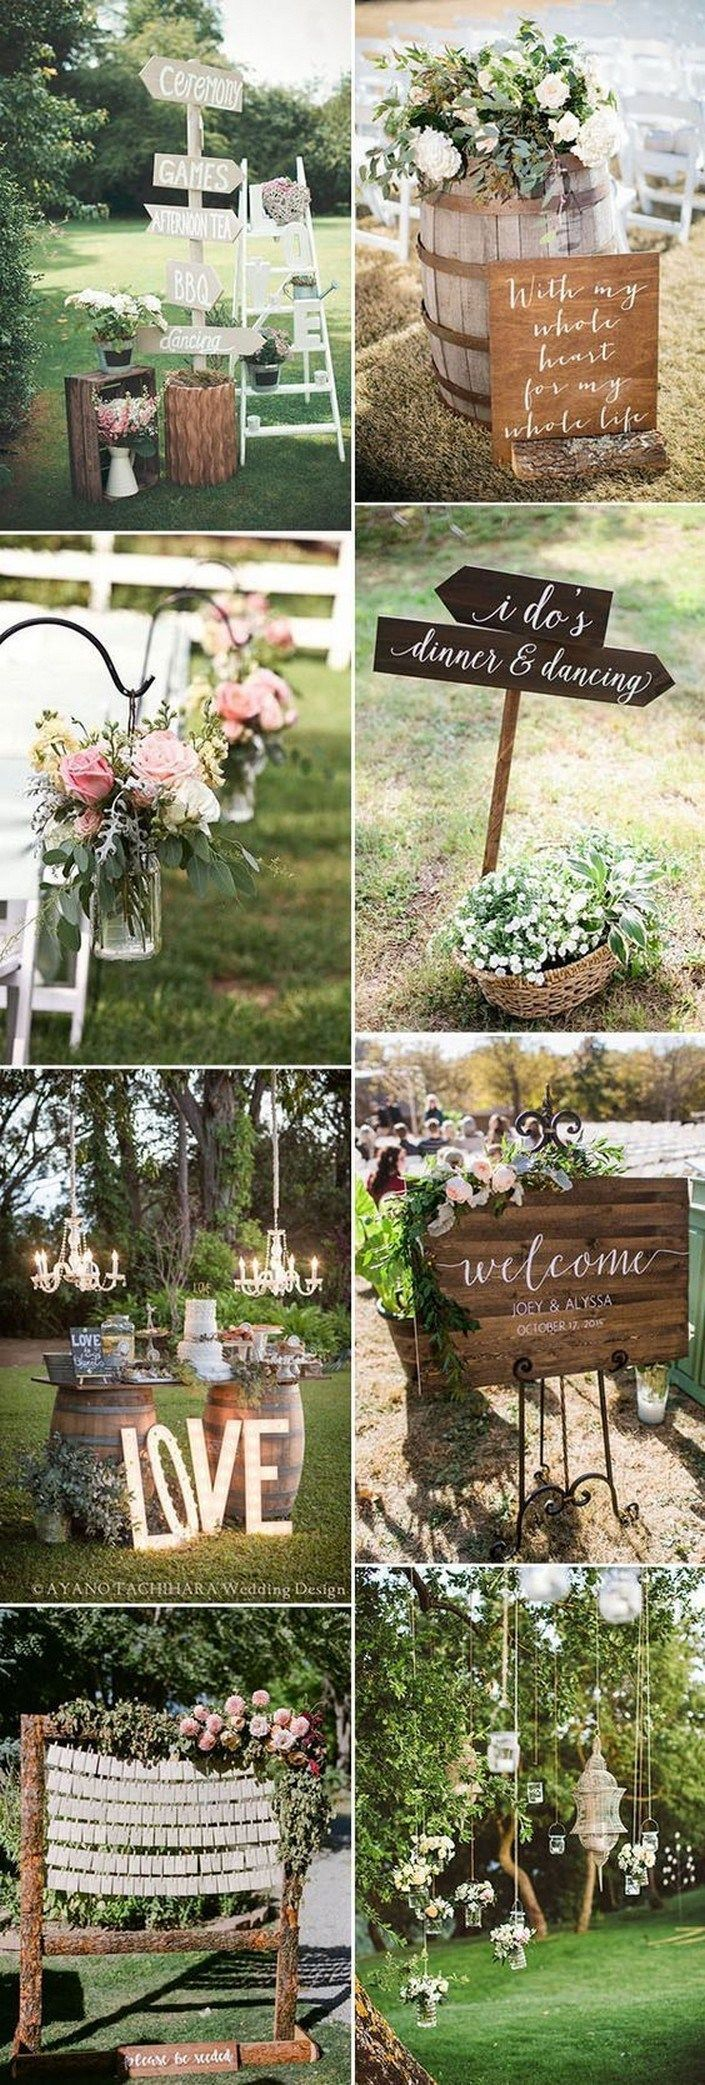 37 Cheap Wedding Ideas On A Small Budget Cheapweddingideas Cheapwedding Weddi In 2020 Garden Wedding Decorations Wedding Decor Photos Wedding Decorations